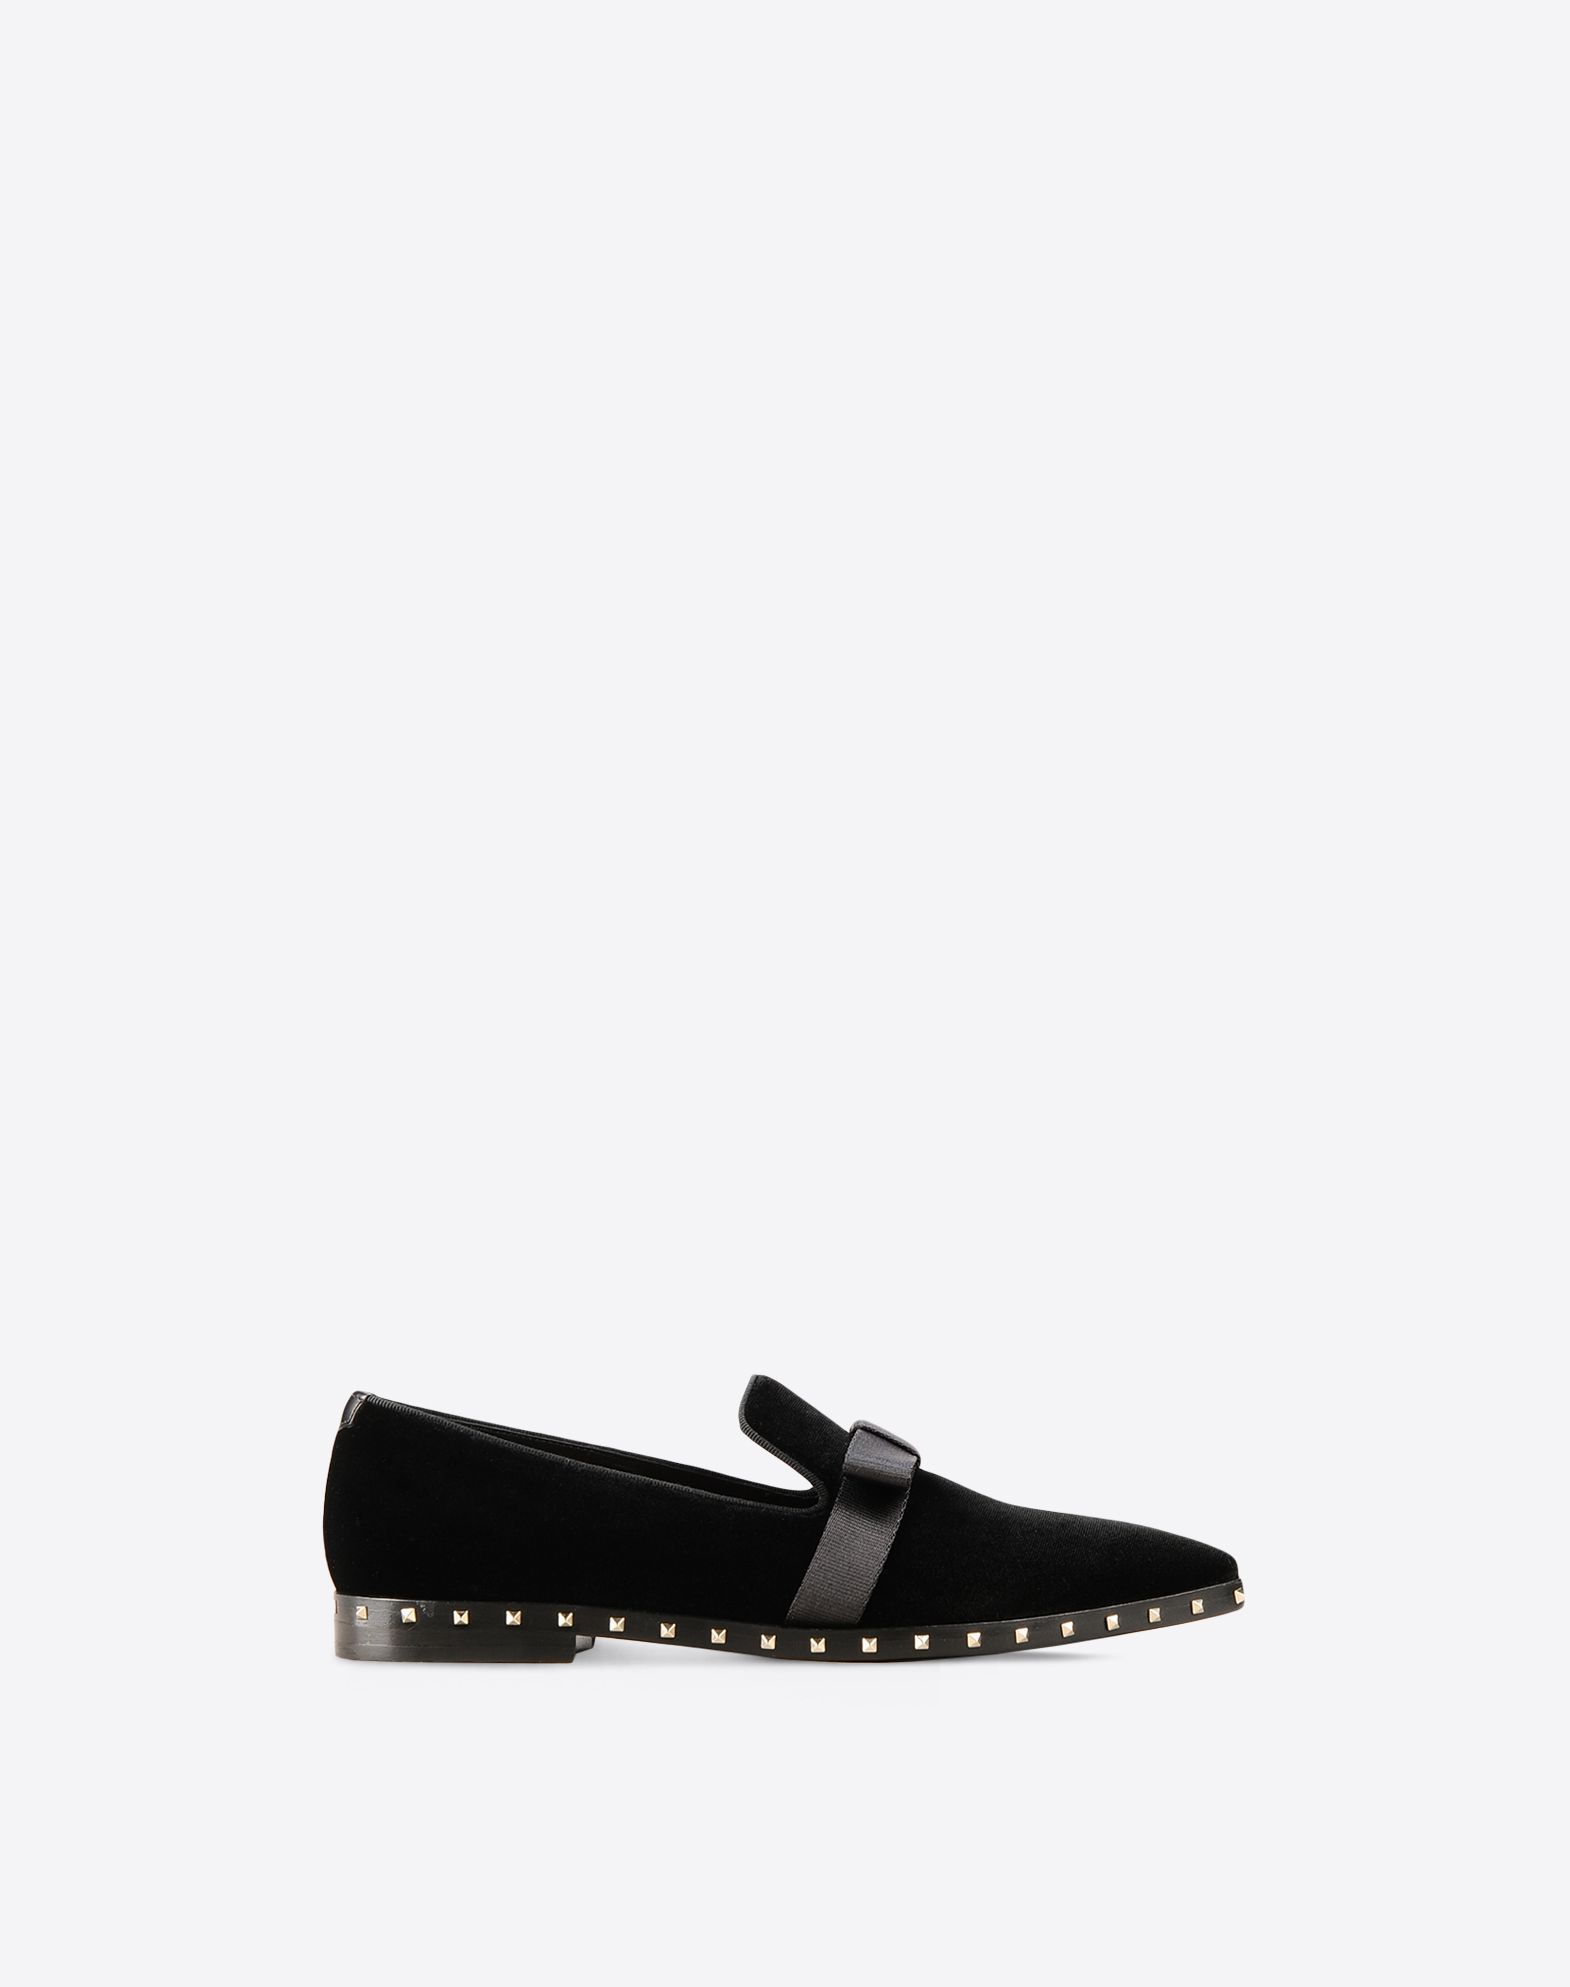 【17AW NEW】VALENTINO_women /SOUL ROCKSTUD SLIPPER/Black